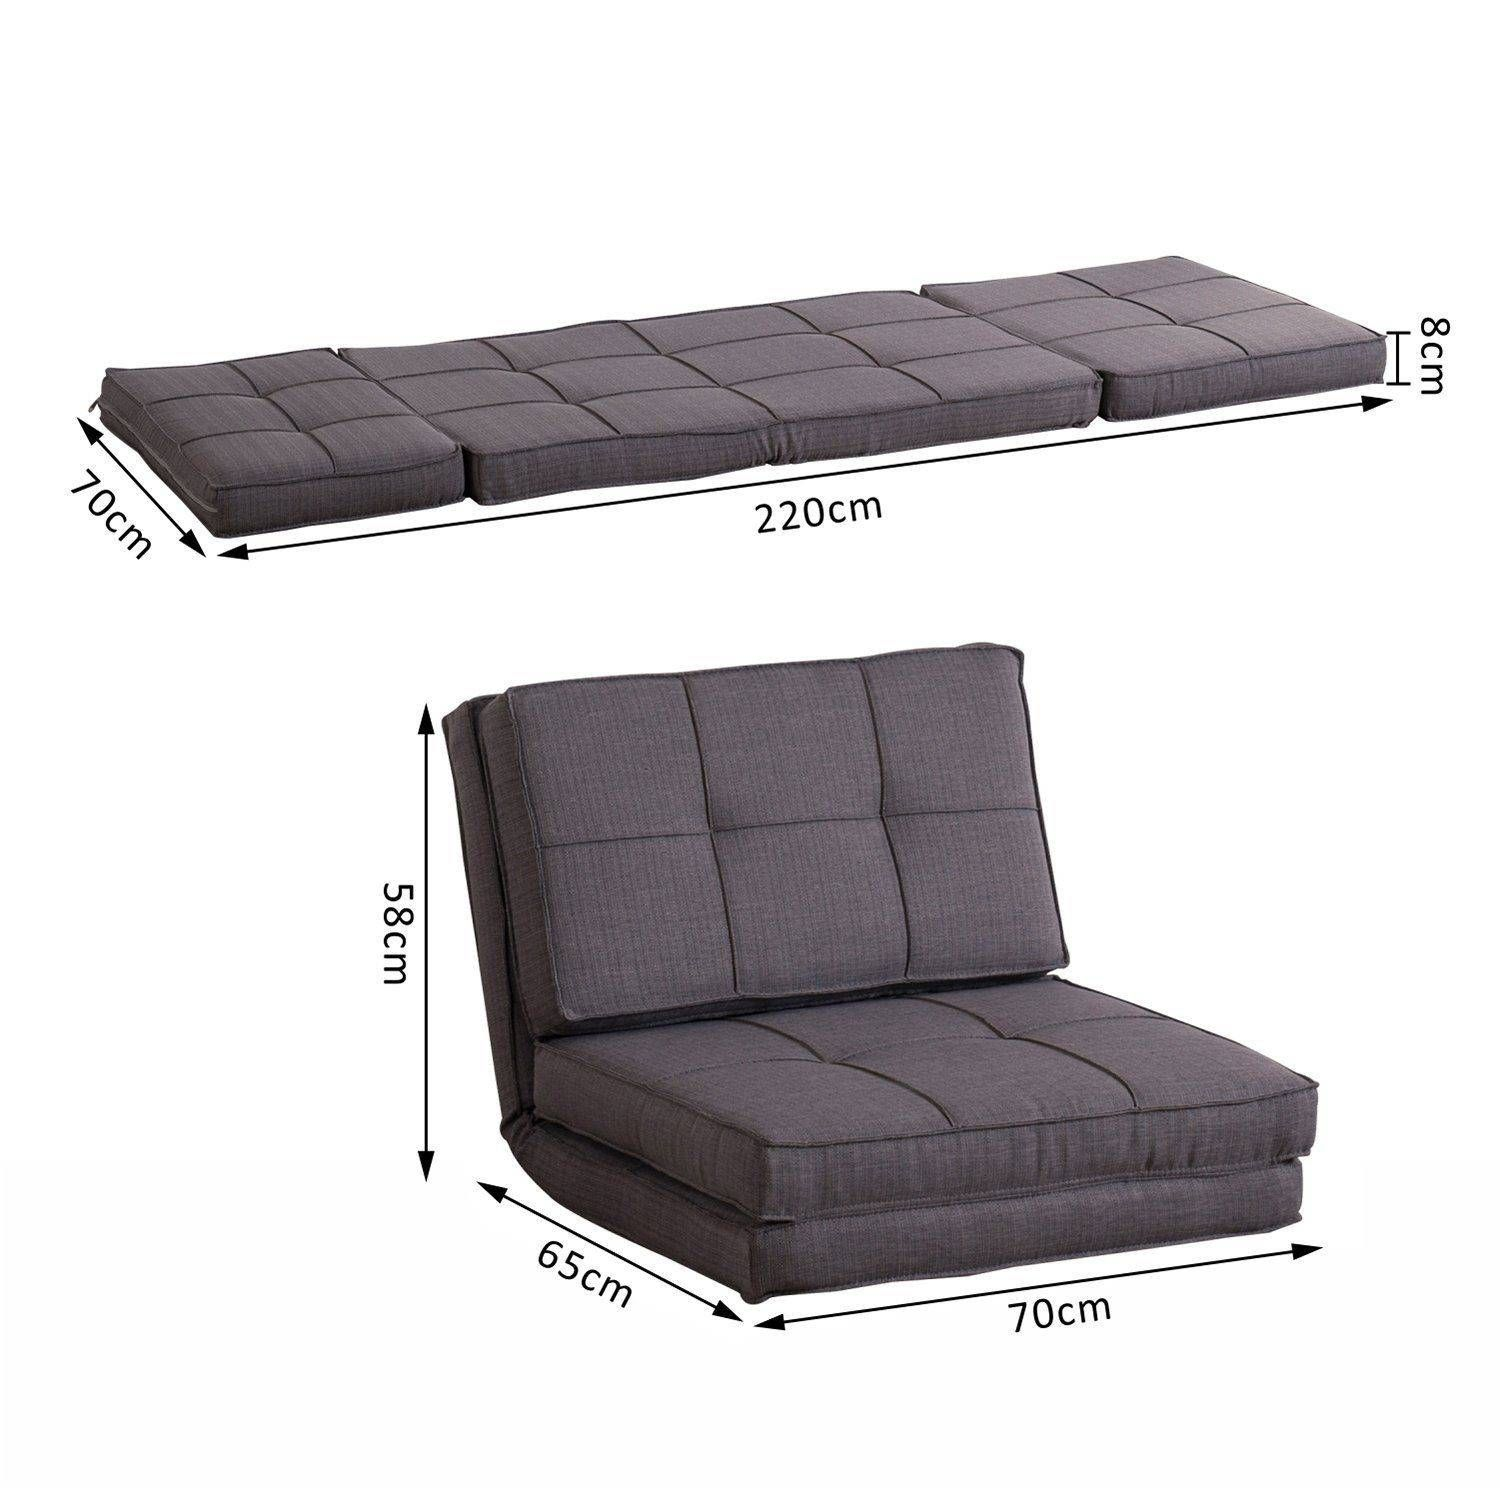 Folding Bed in 2020 Sofa bed fold out, Sofa bed mattress